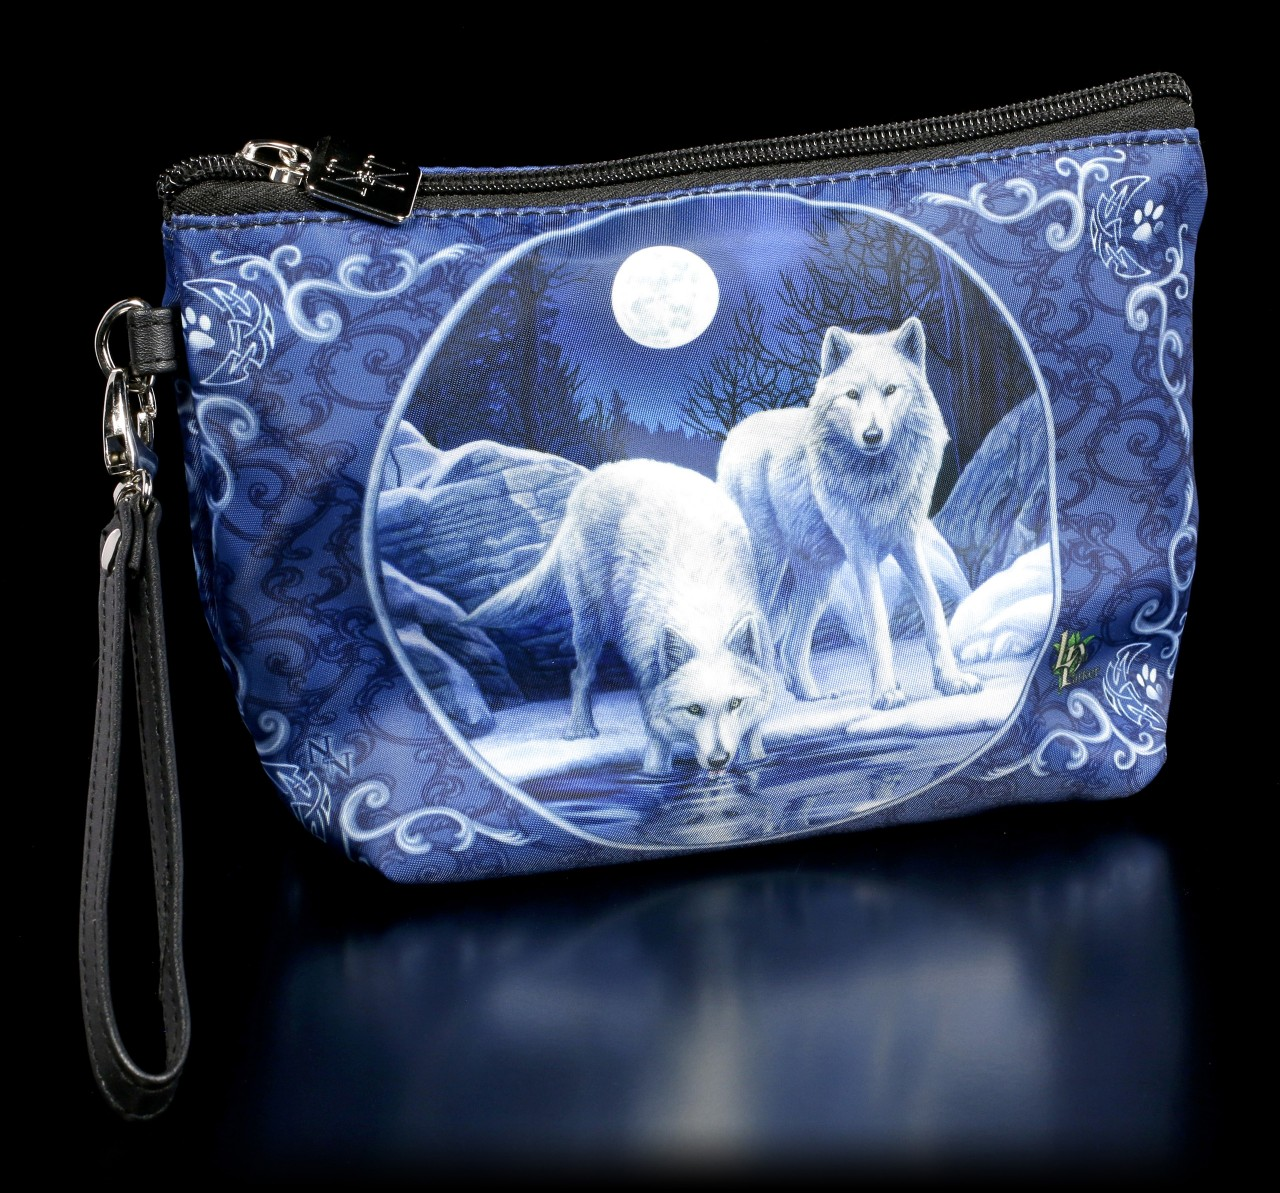 Toilet Bag with Wolves - Warriors of Winter